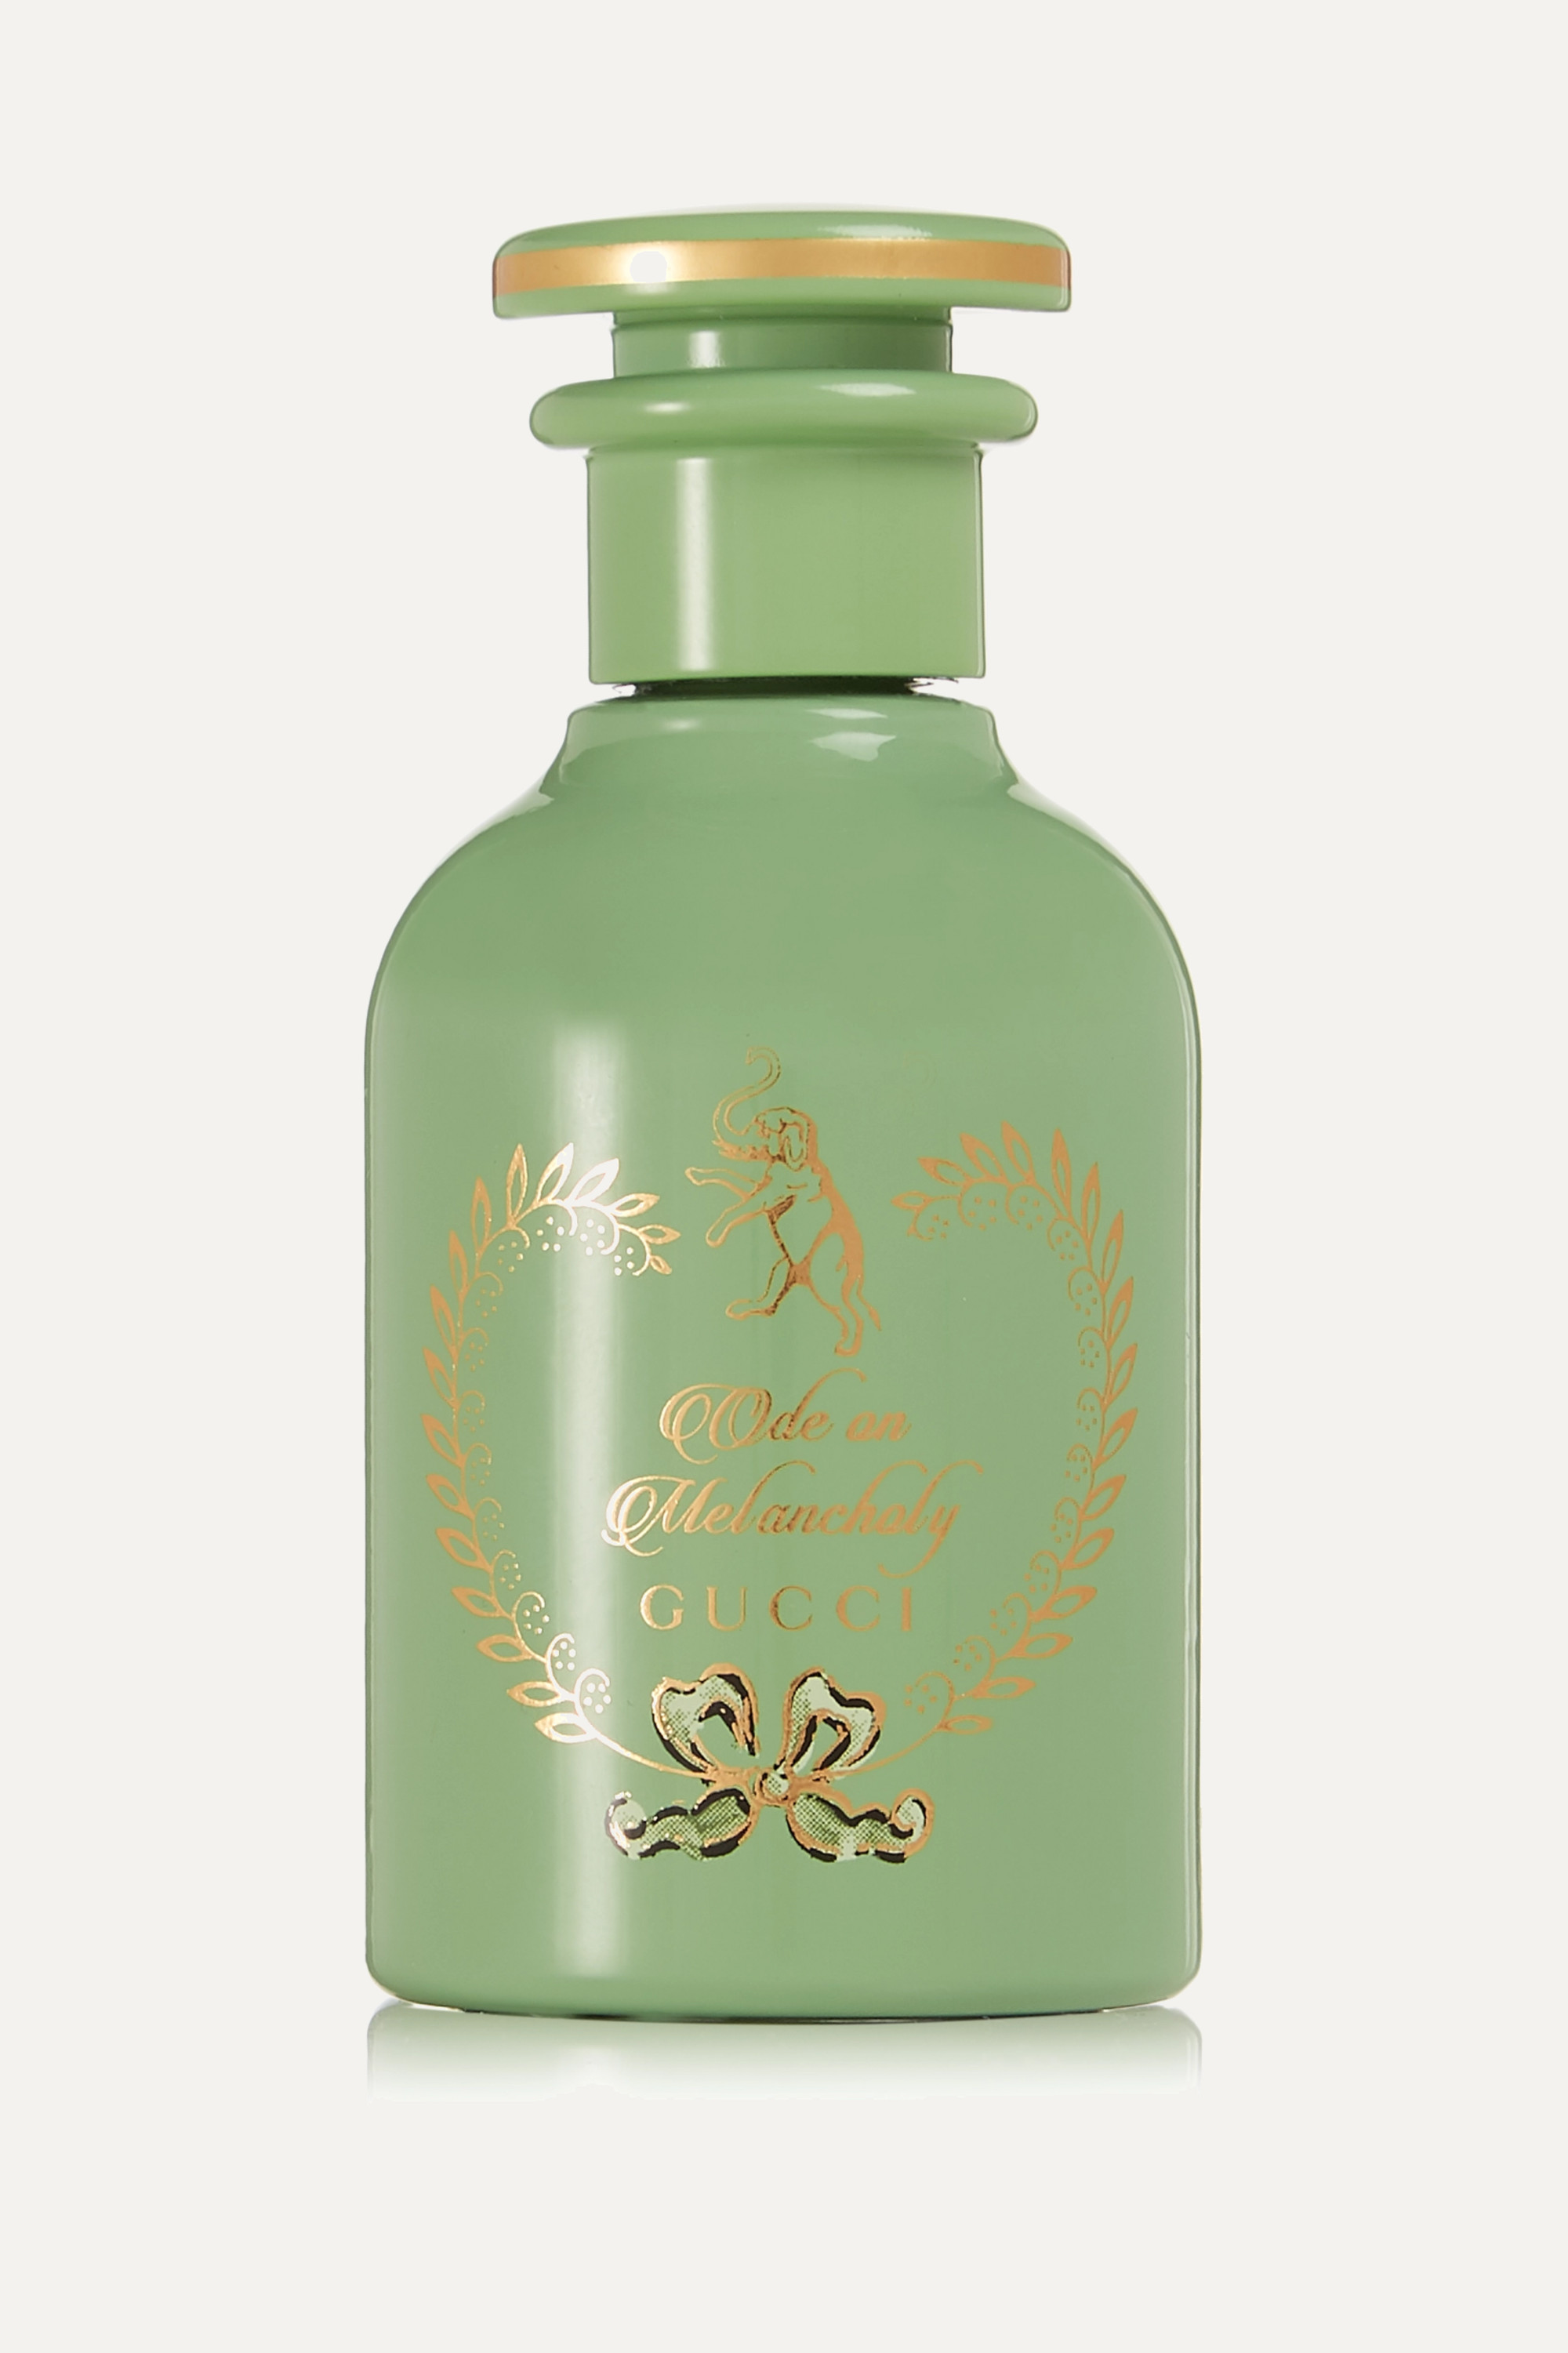 Gucci Beauty Gucci: The Alchemist's Garden - Ode On Melancholy Perfume Oil, 20ml